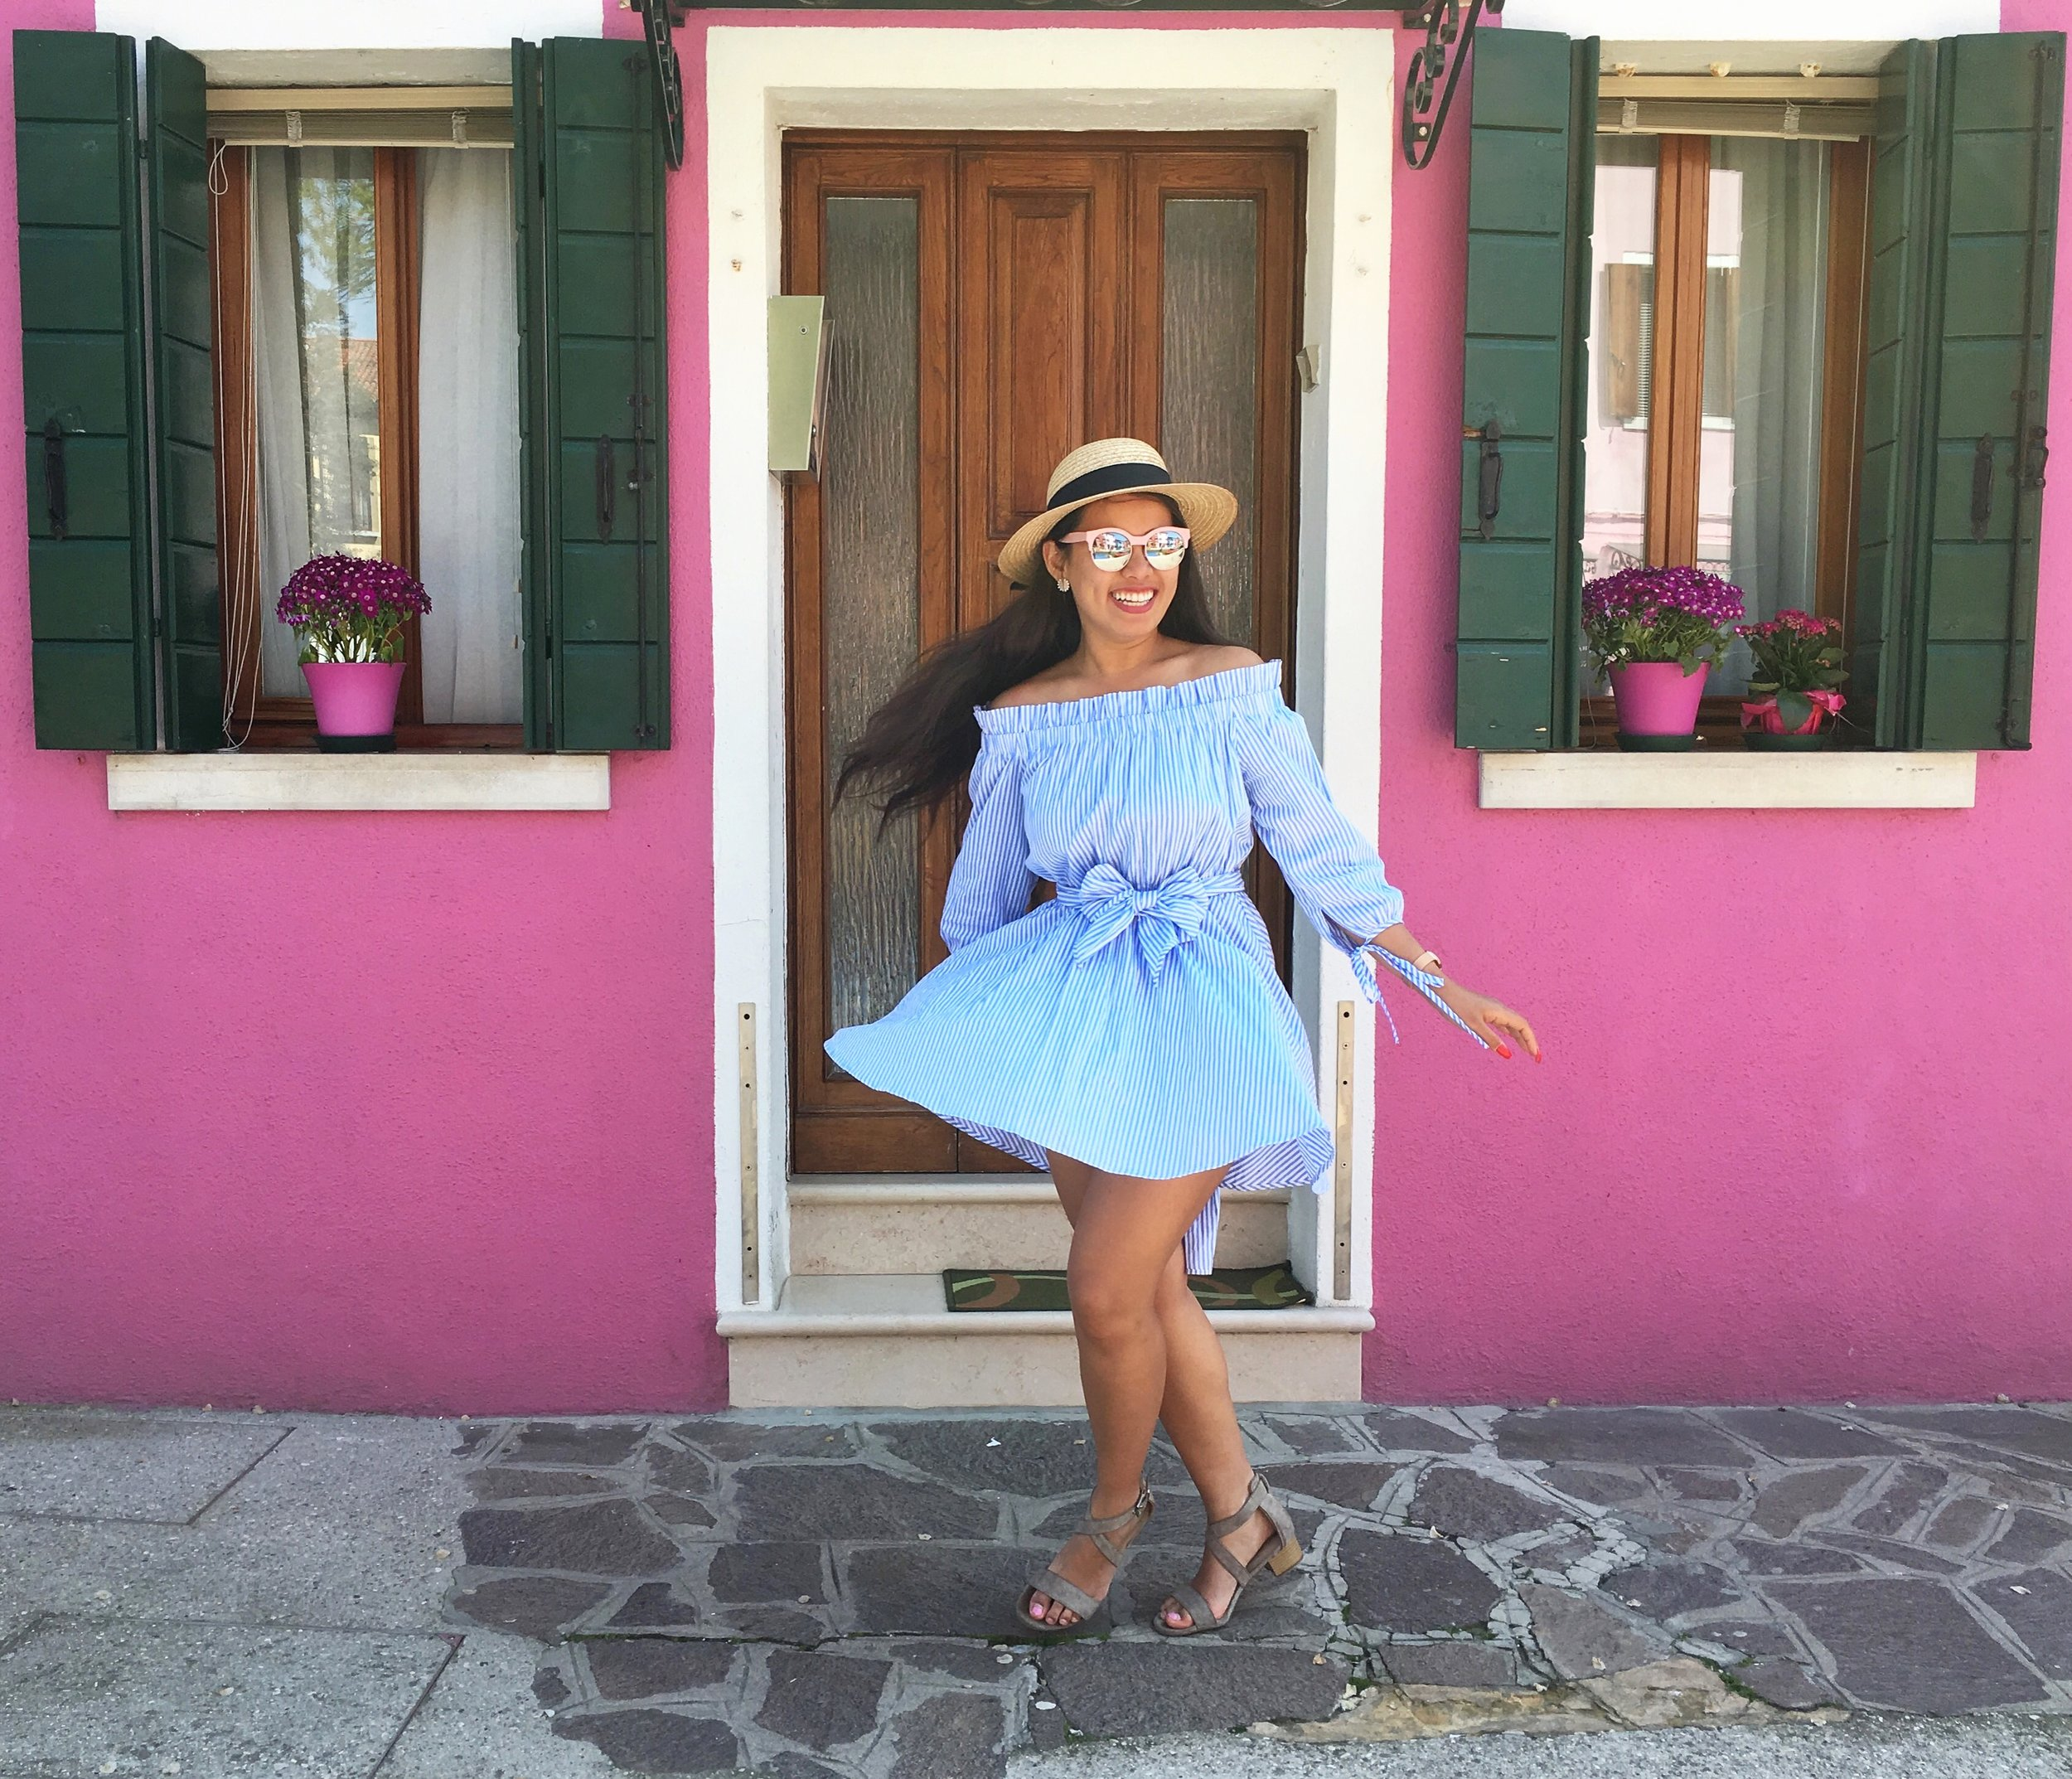 Feeling happy as can be in  Burano, Italy